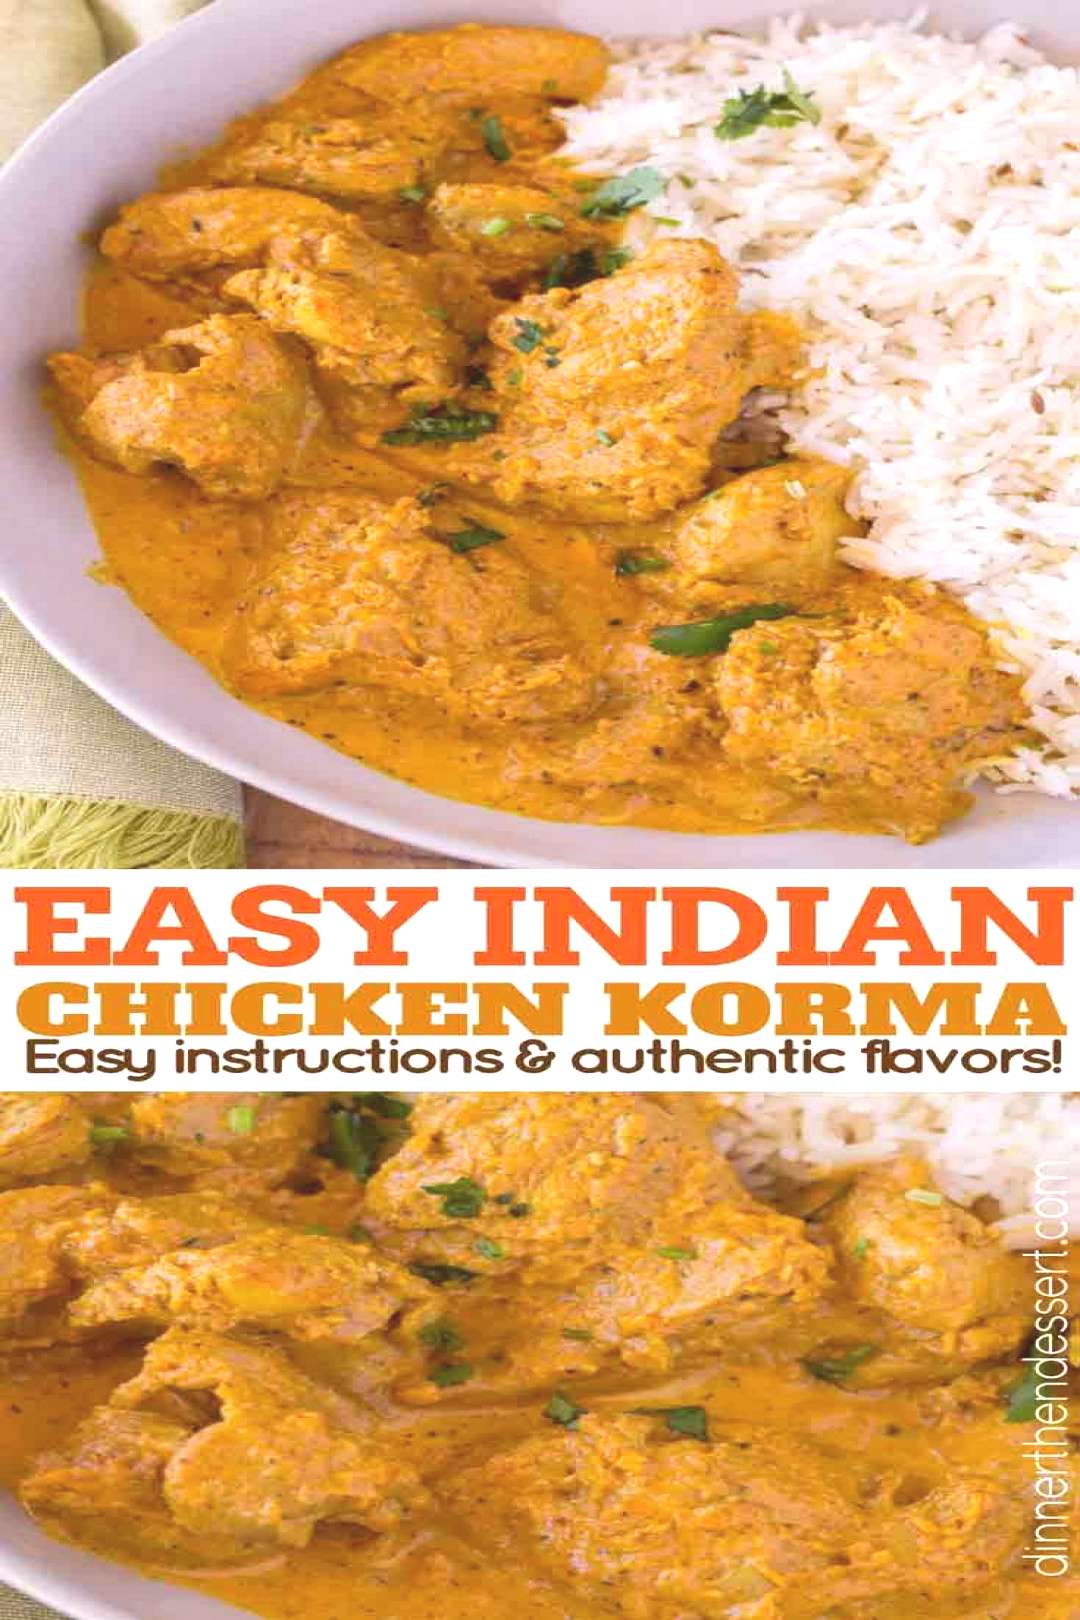 Chicken Korma is a traditional Indian dish thats light and flavorful almond curry made with tomato